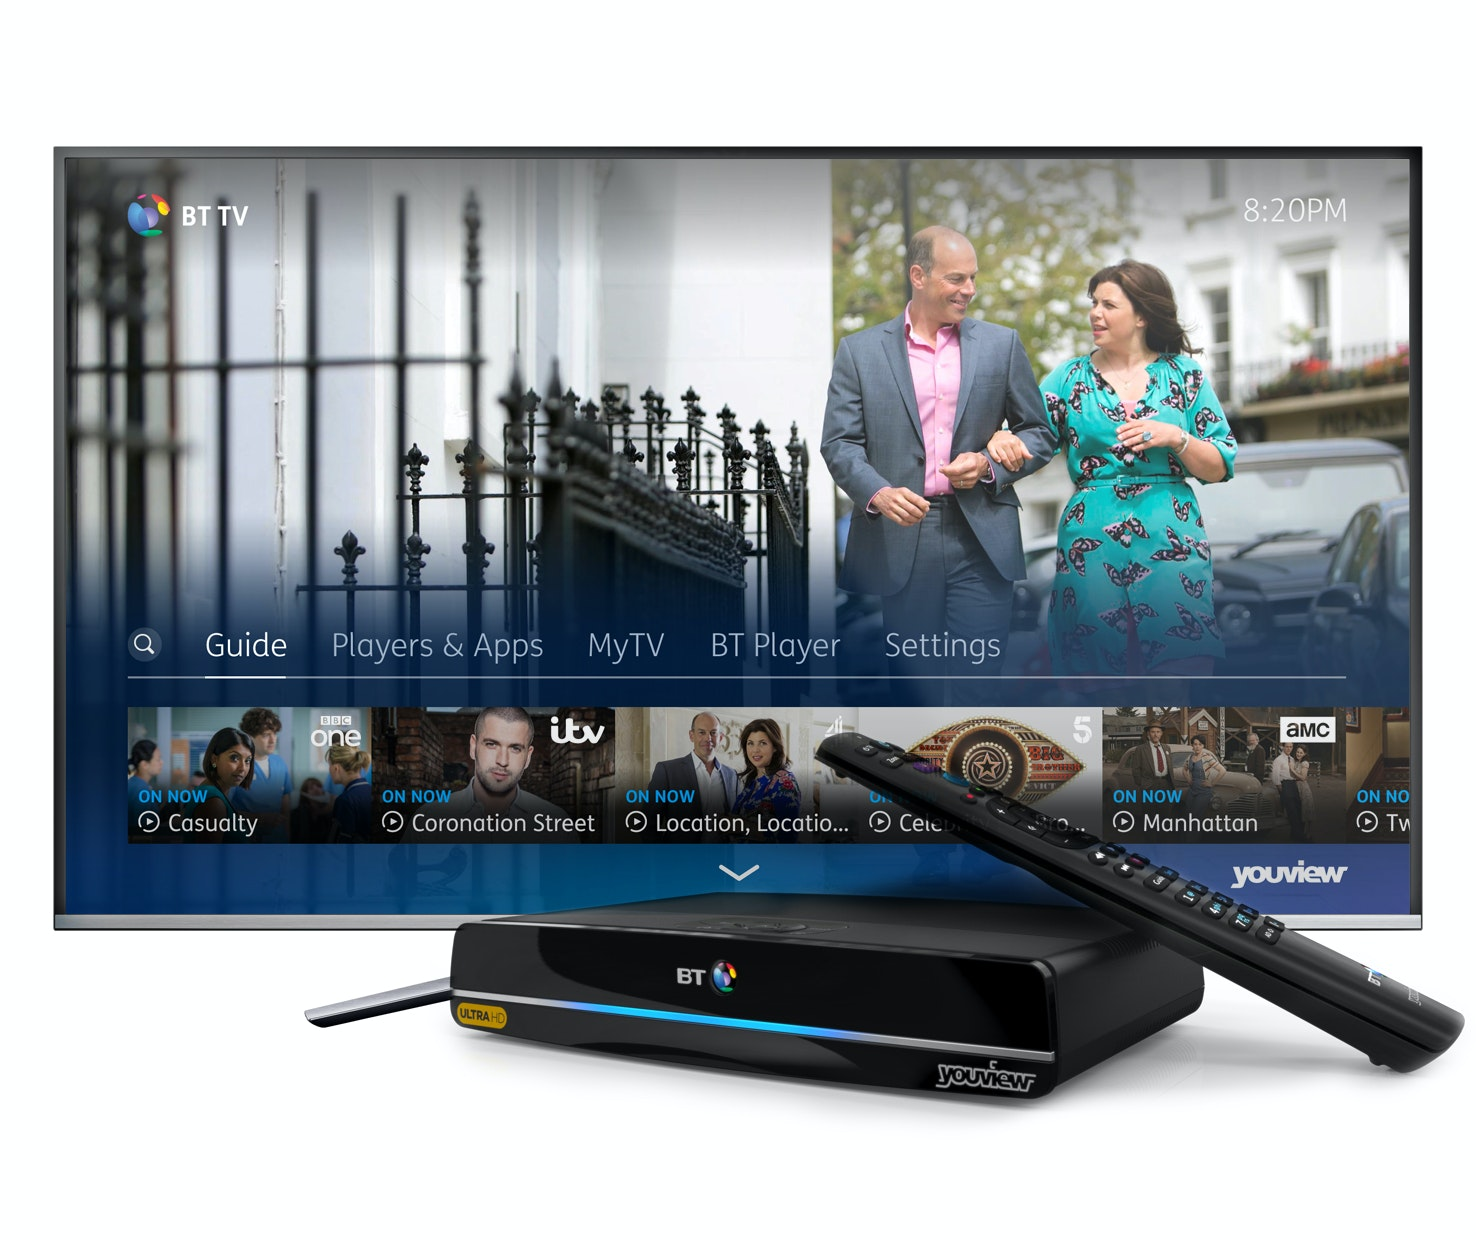 Bt tv competition image